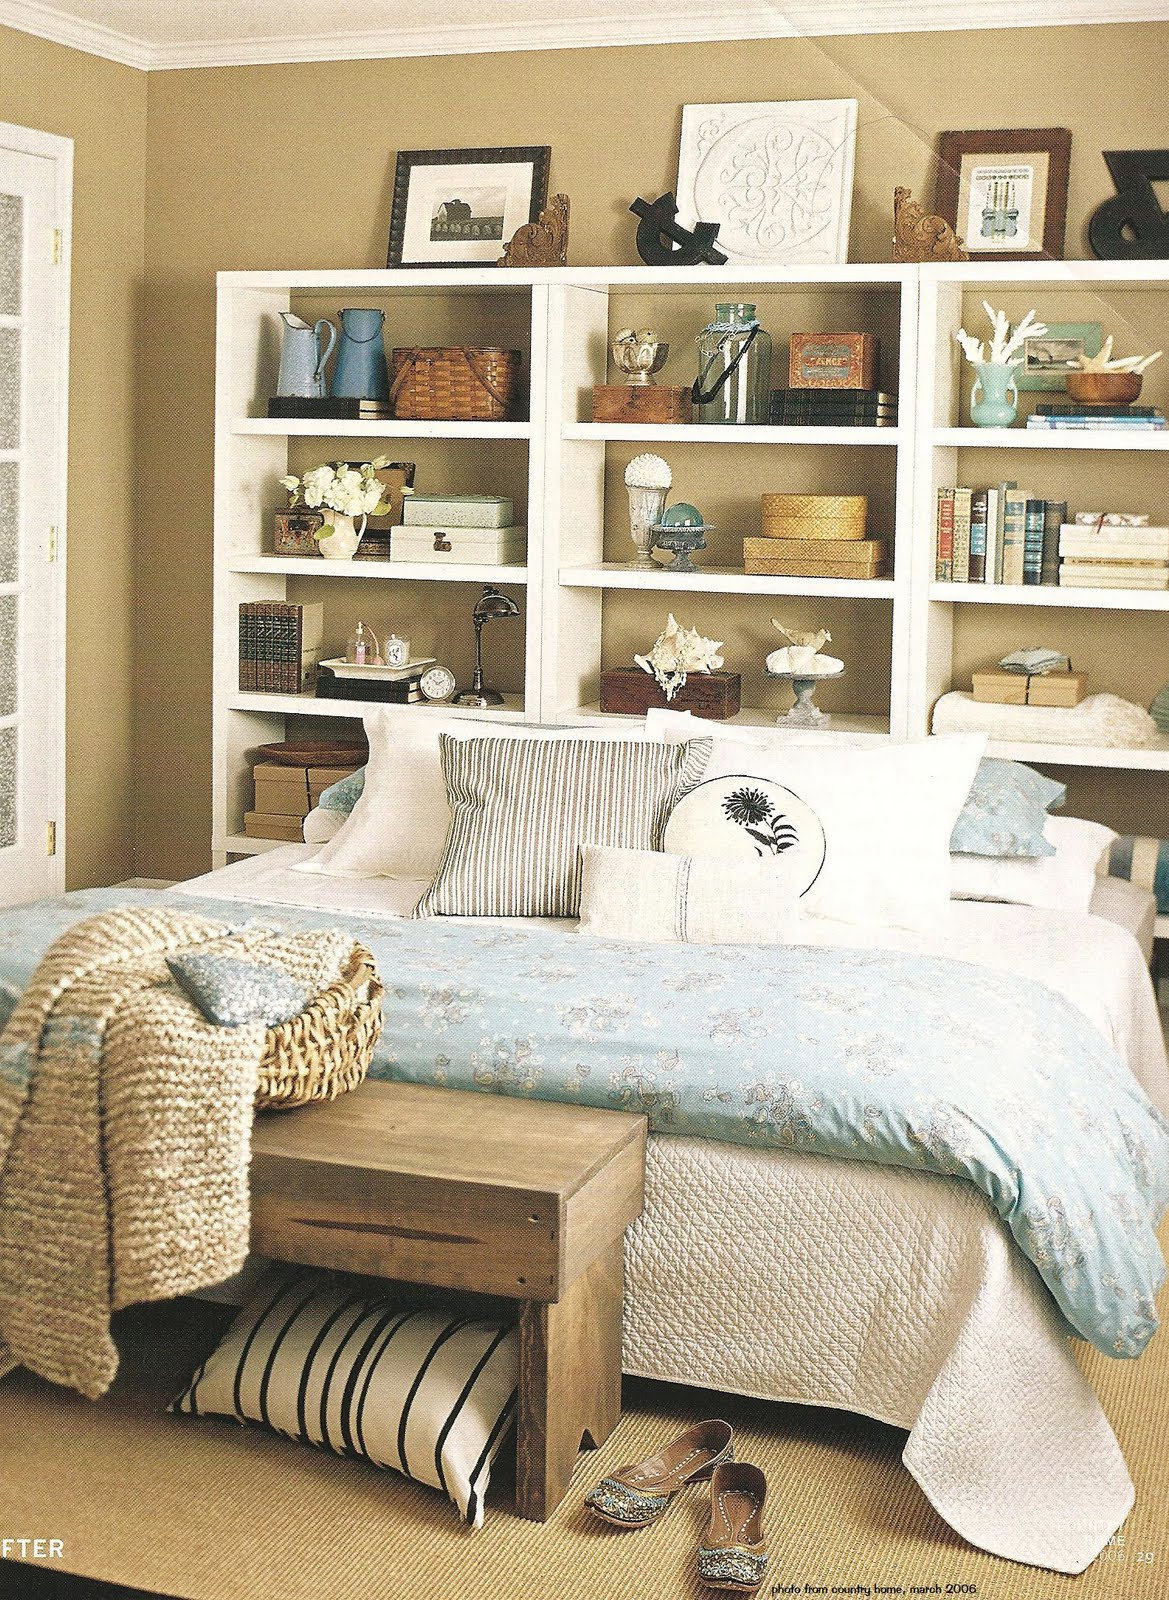 Outstanding Bedroom Ideas With Headboards At Ikea